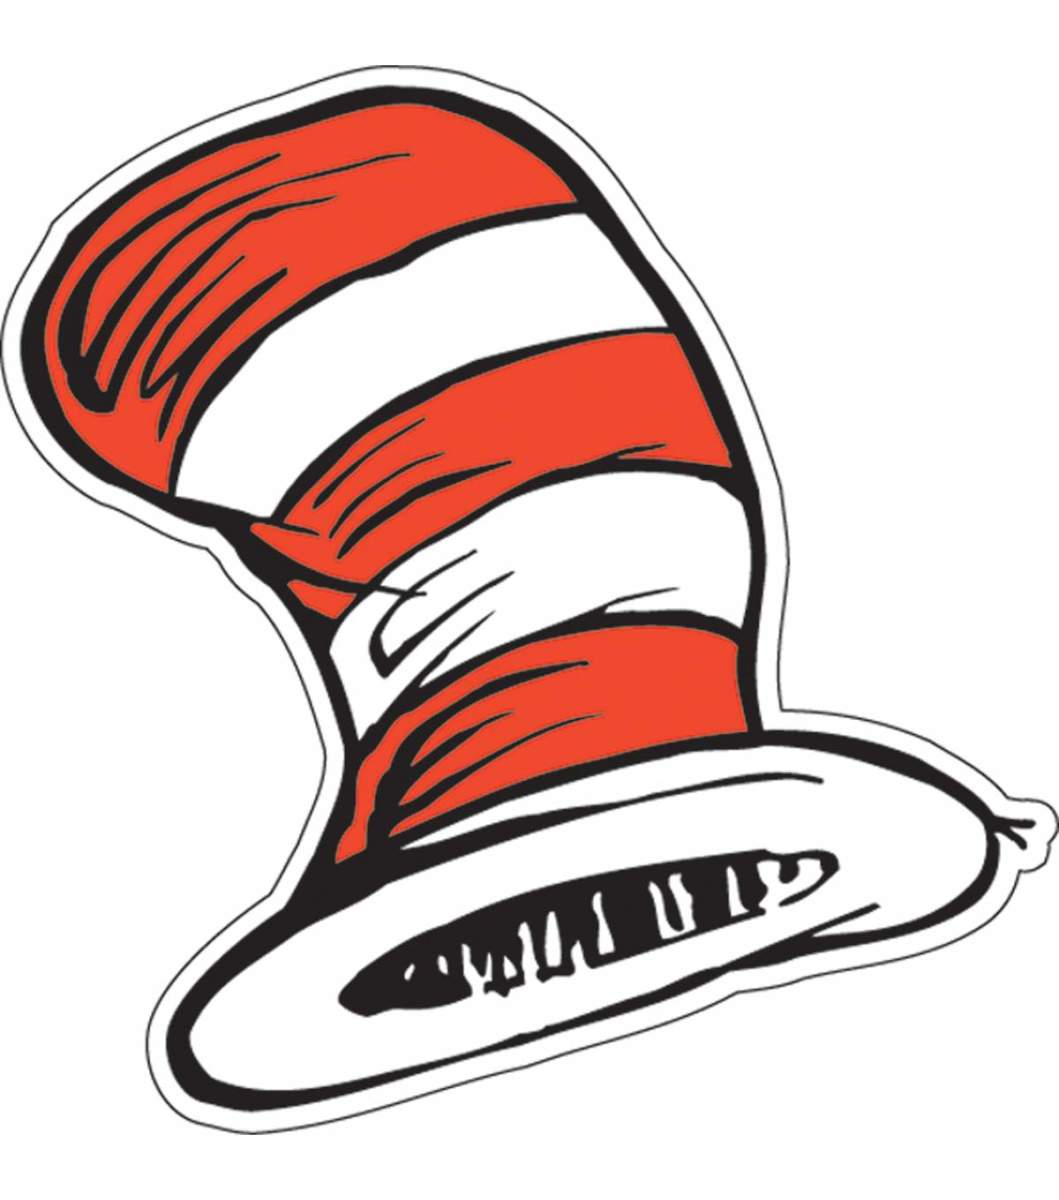 The Cat In The Hat Knows